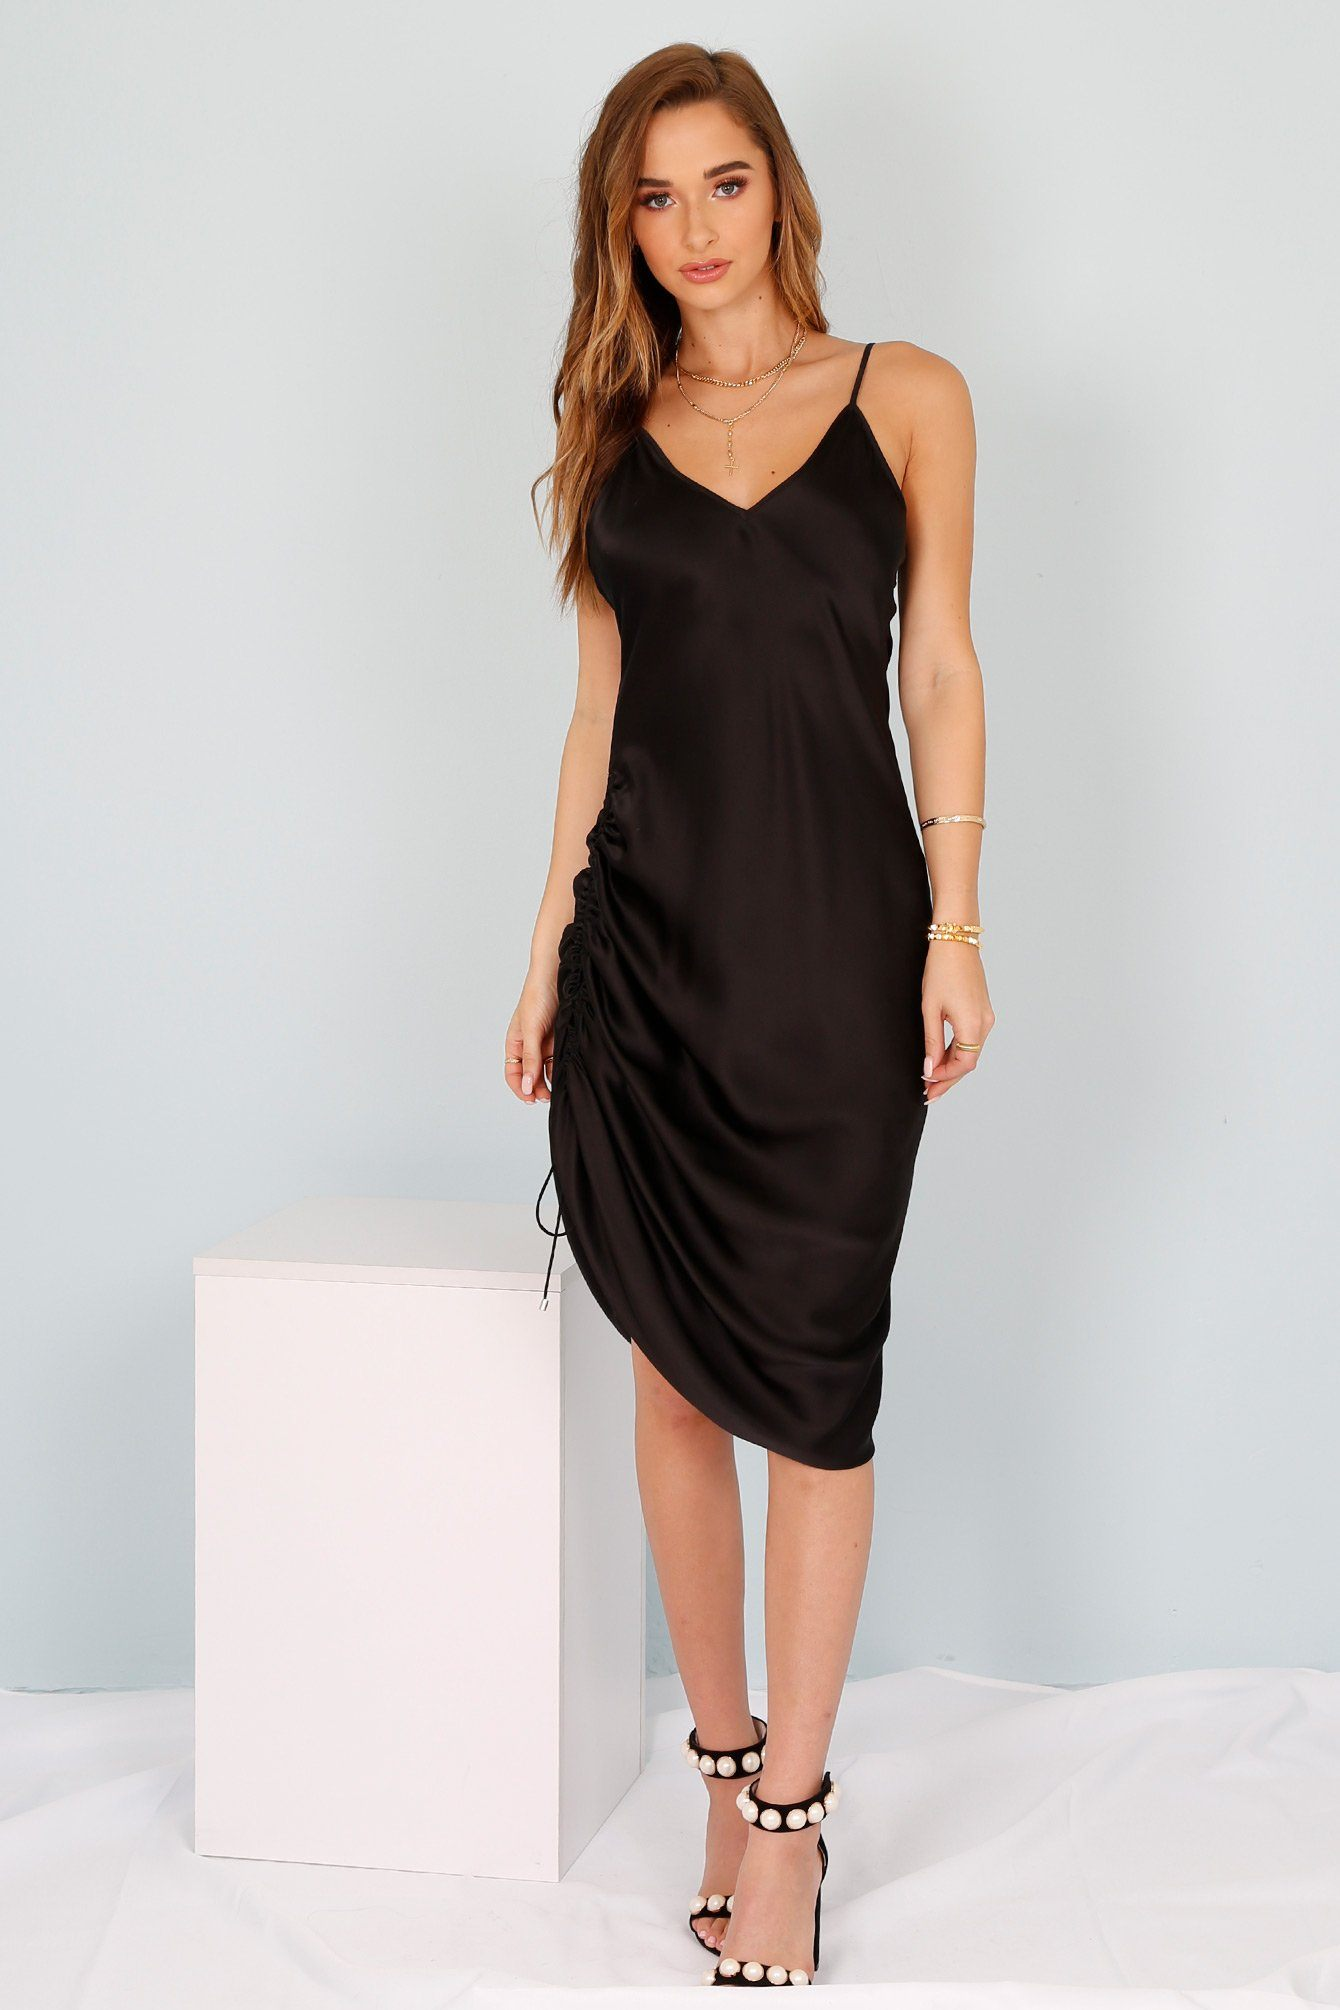 Black Silk Dresses for Women